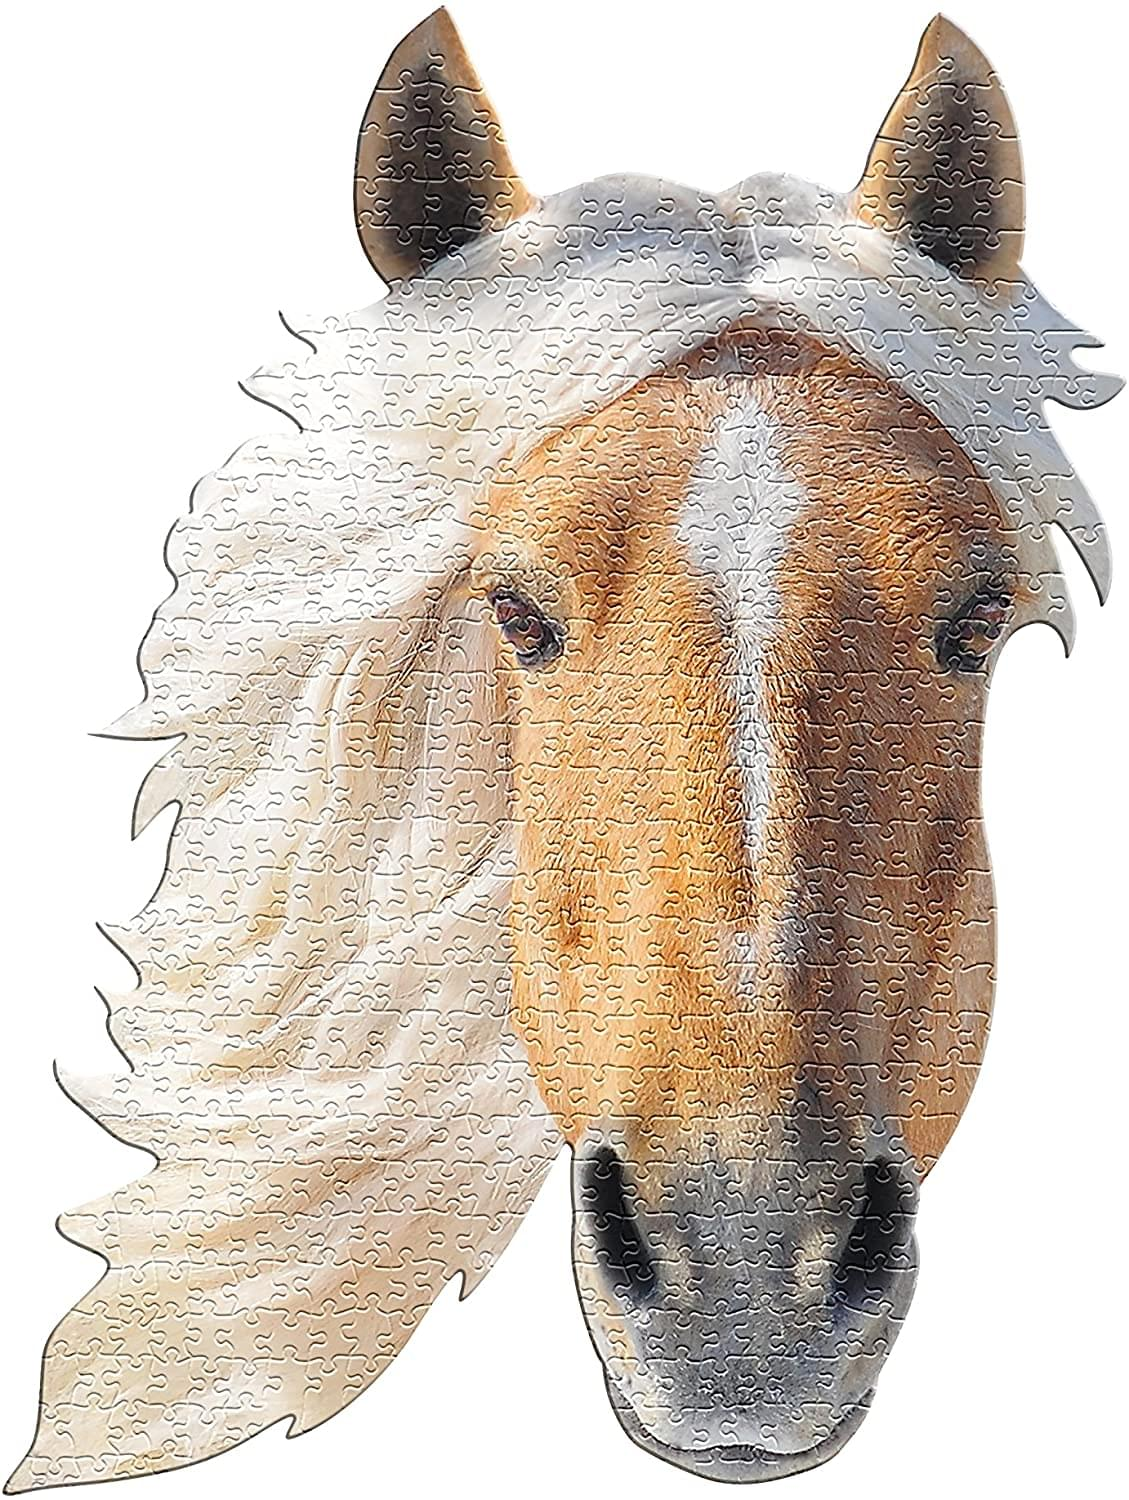 I AM Horse 550 Piece Animal Head-Shaped Jigsaw Puzzle